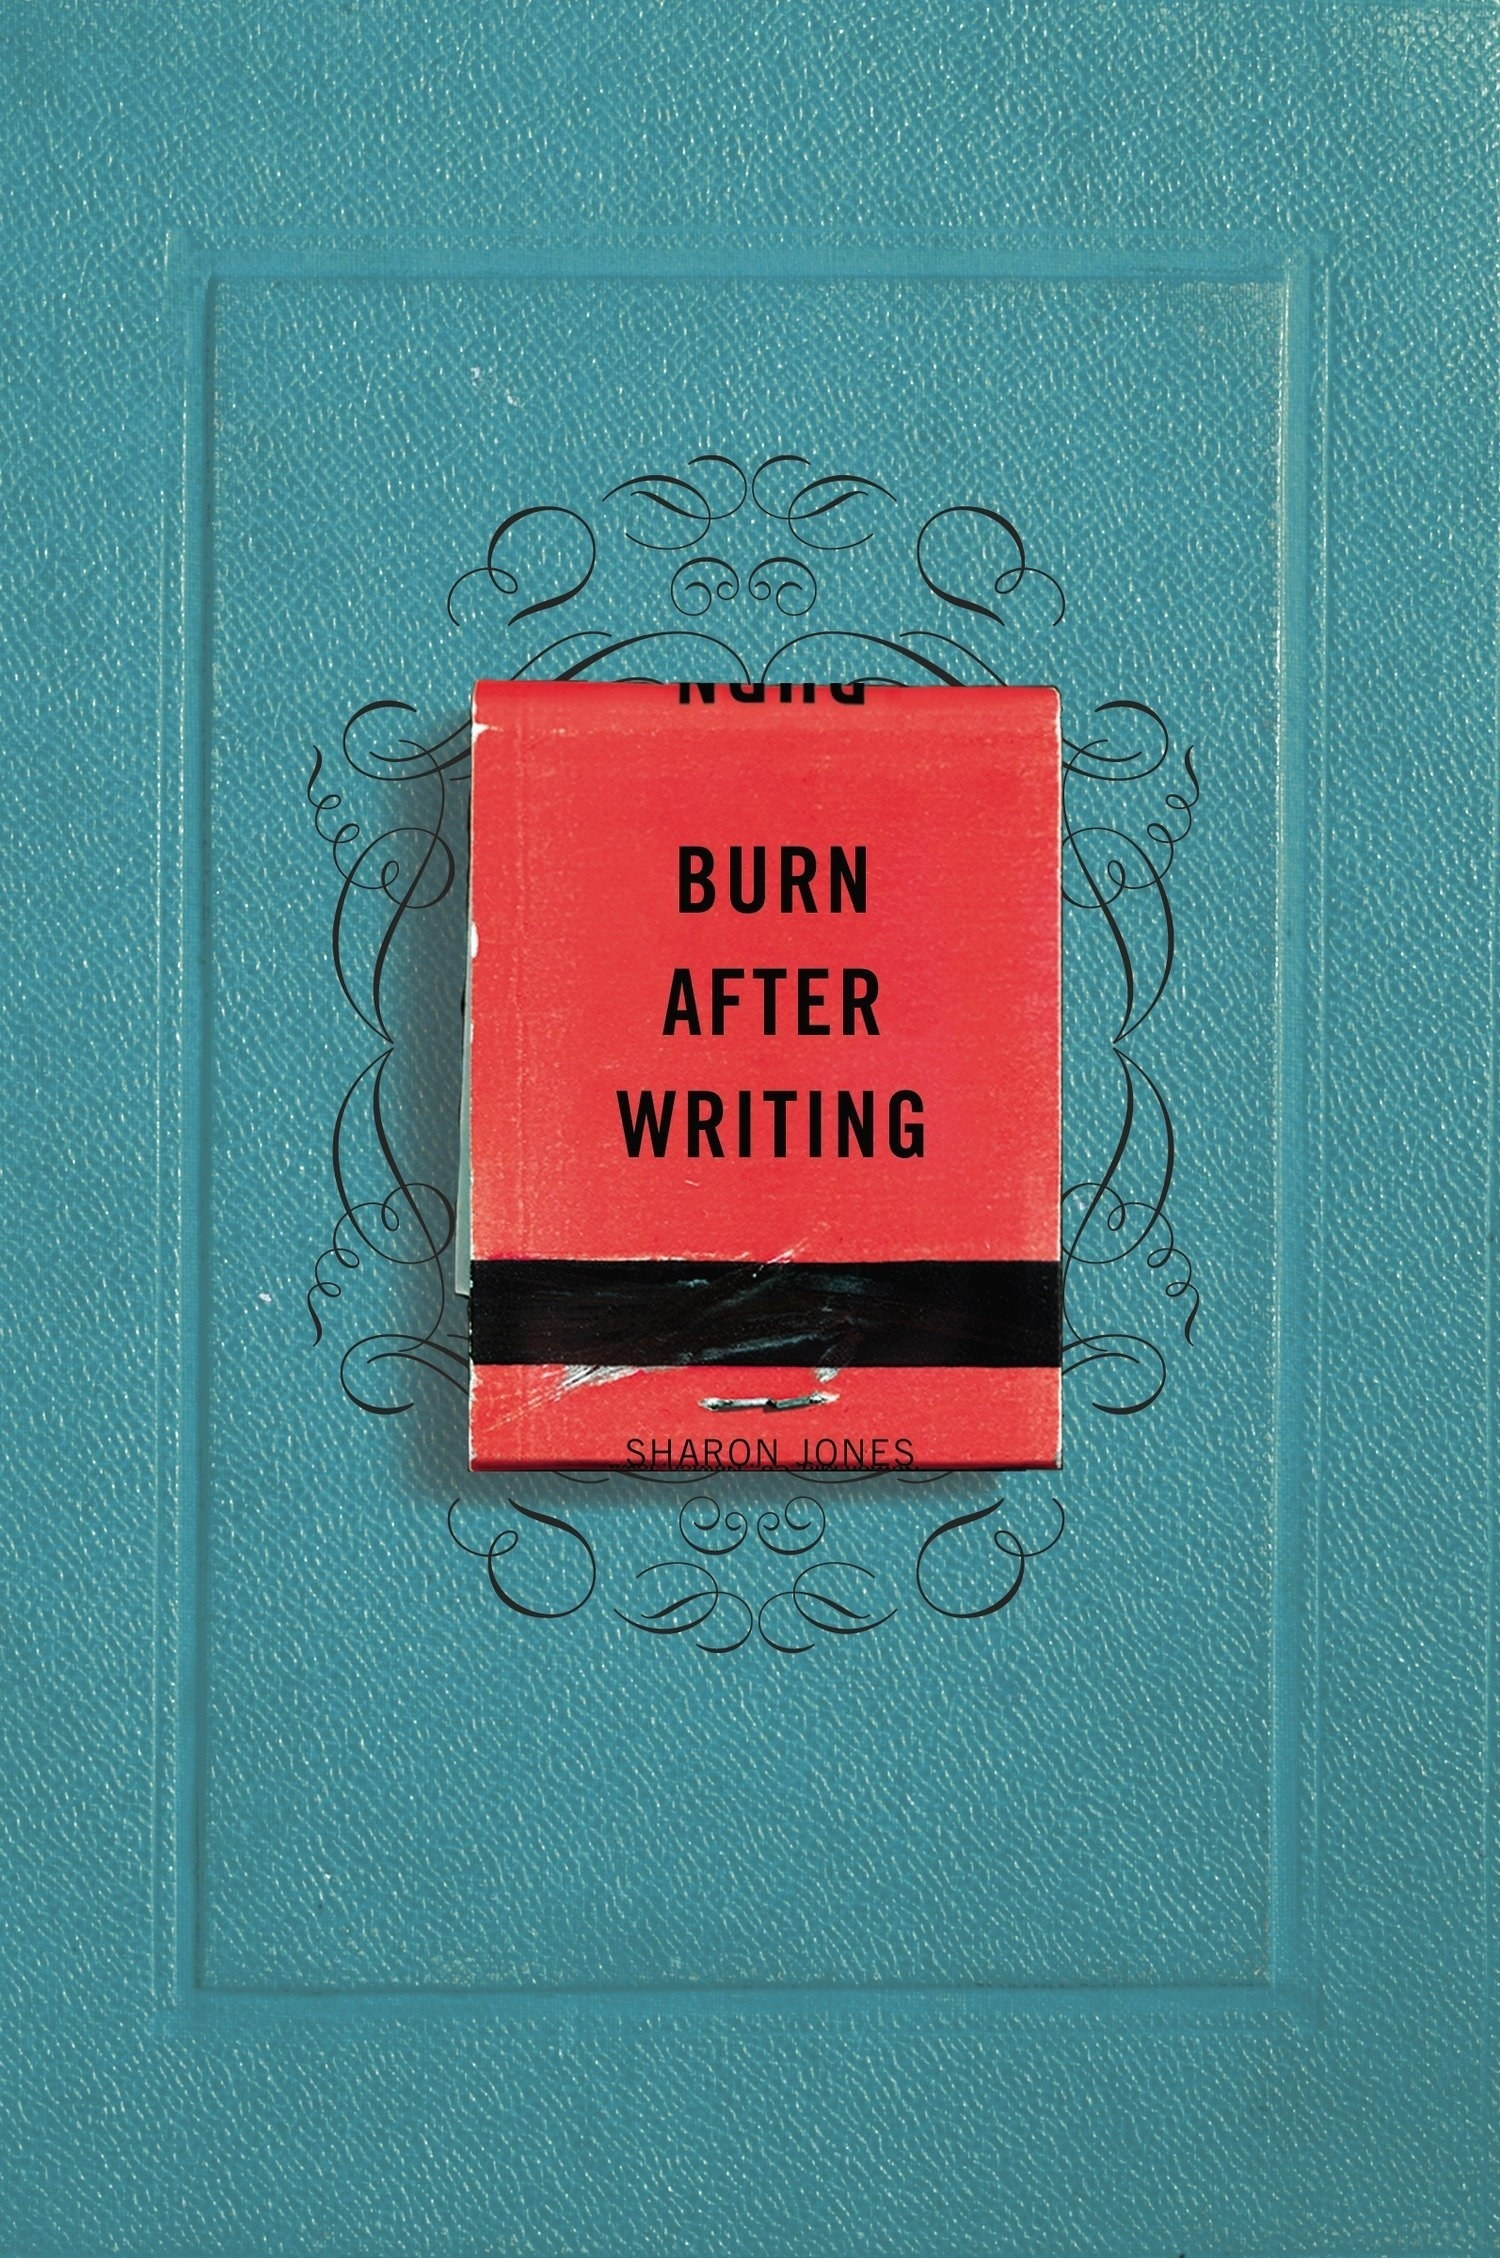 the turquoise cover with a matchbox on it